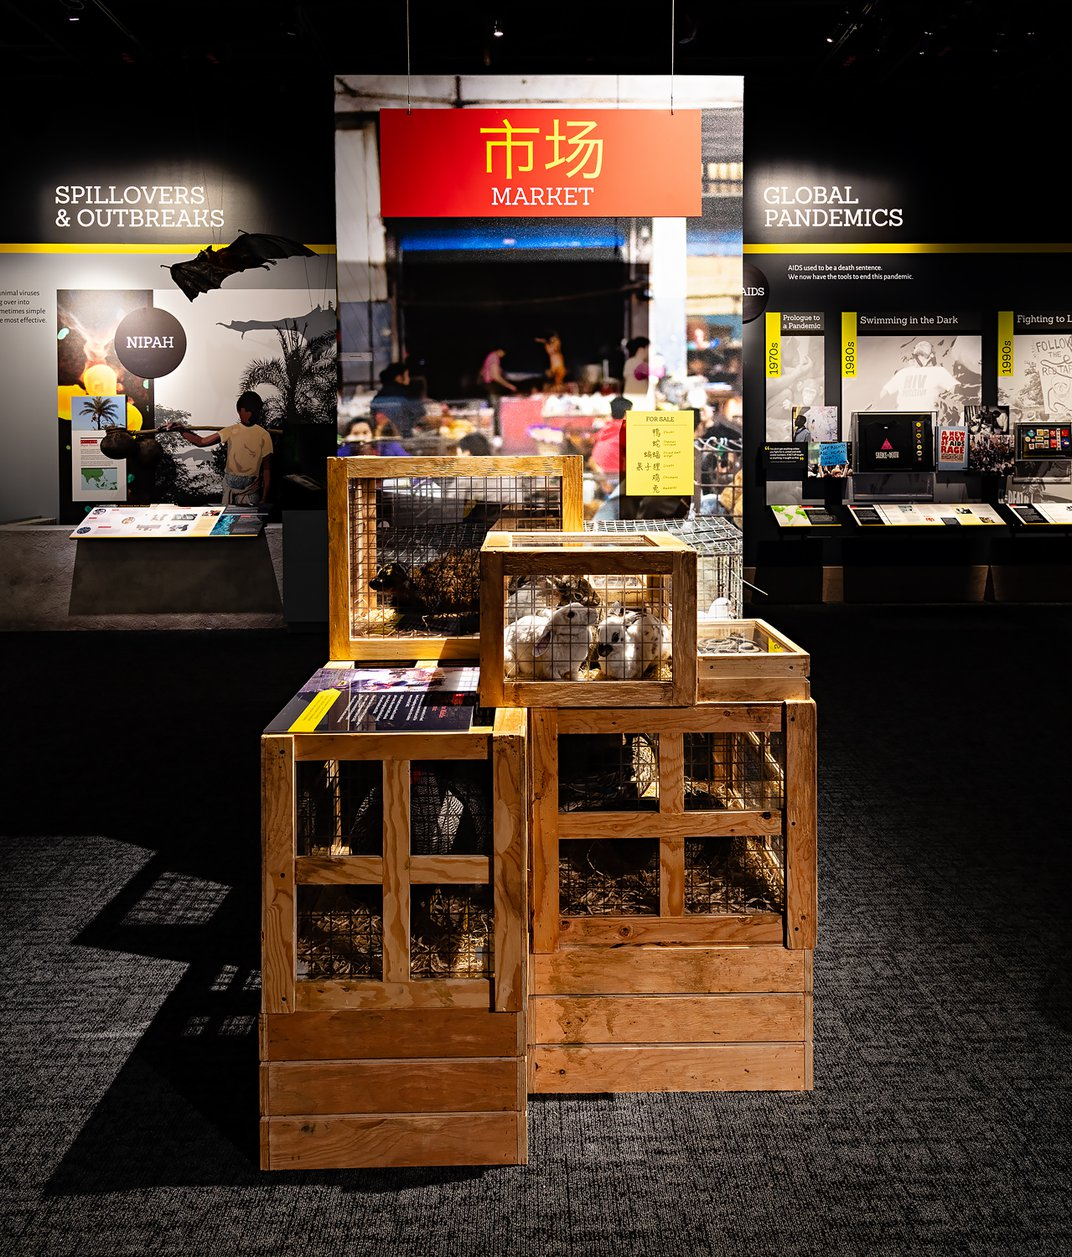 A display consisting of replicated wild animals in wooden crates to mimic a live animal market in an exhibition about pandemics at the Smithsonian's National Museum of Natural History.